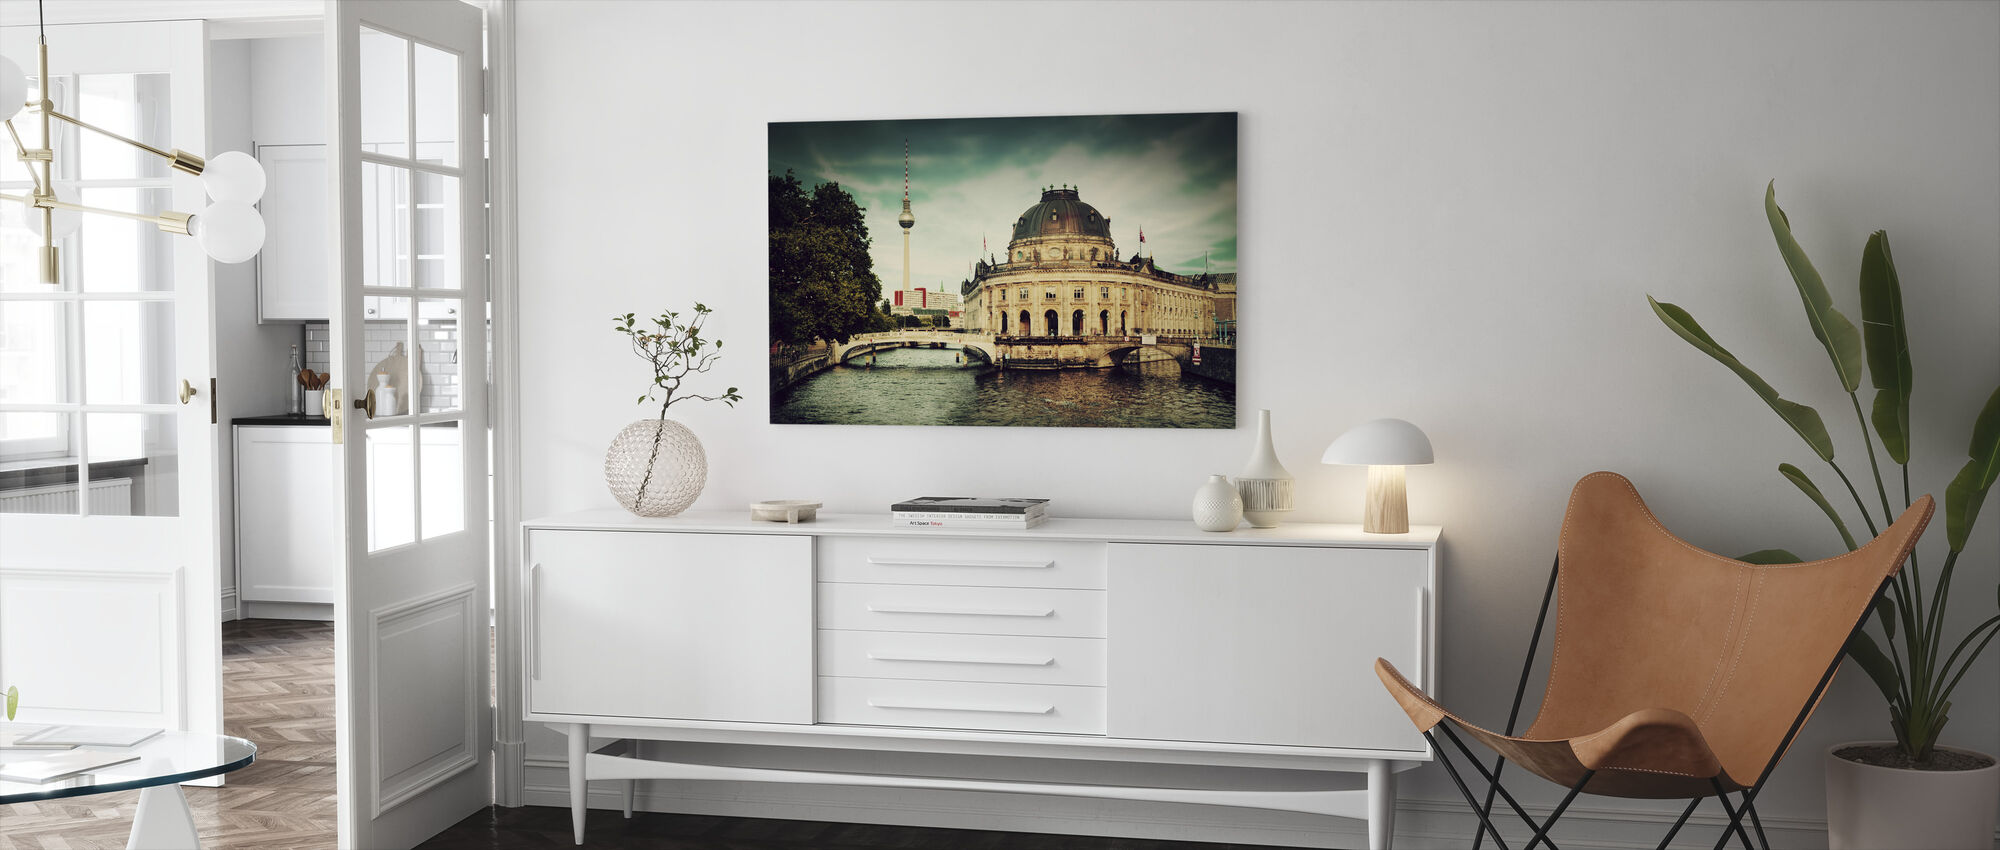 The Bode Museum in Berlin - Canvas print - Living Room